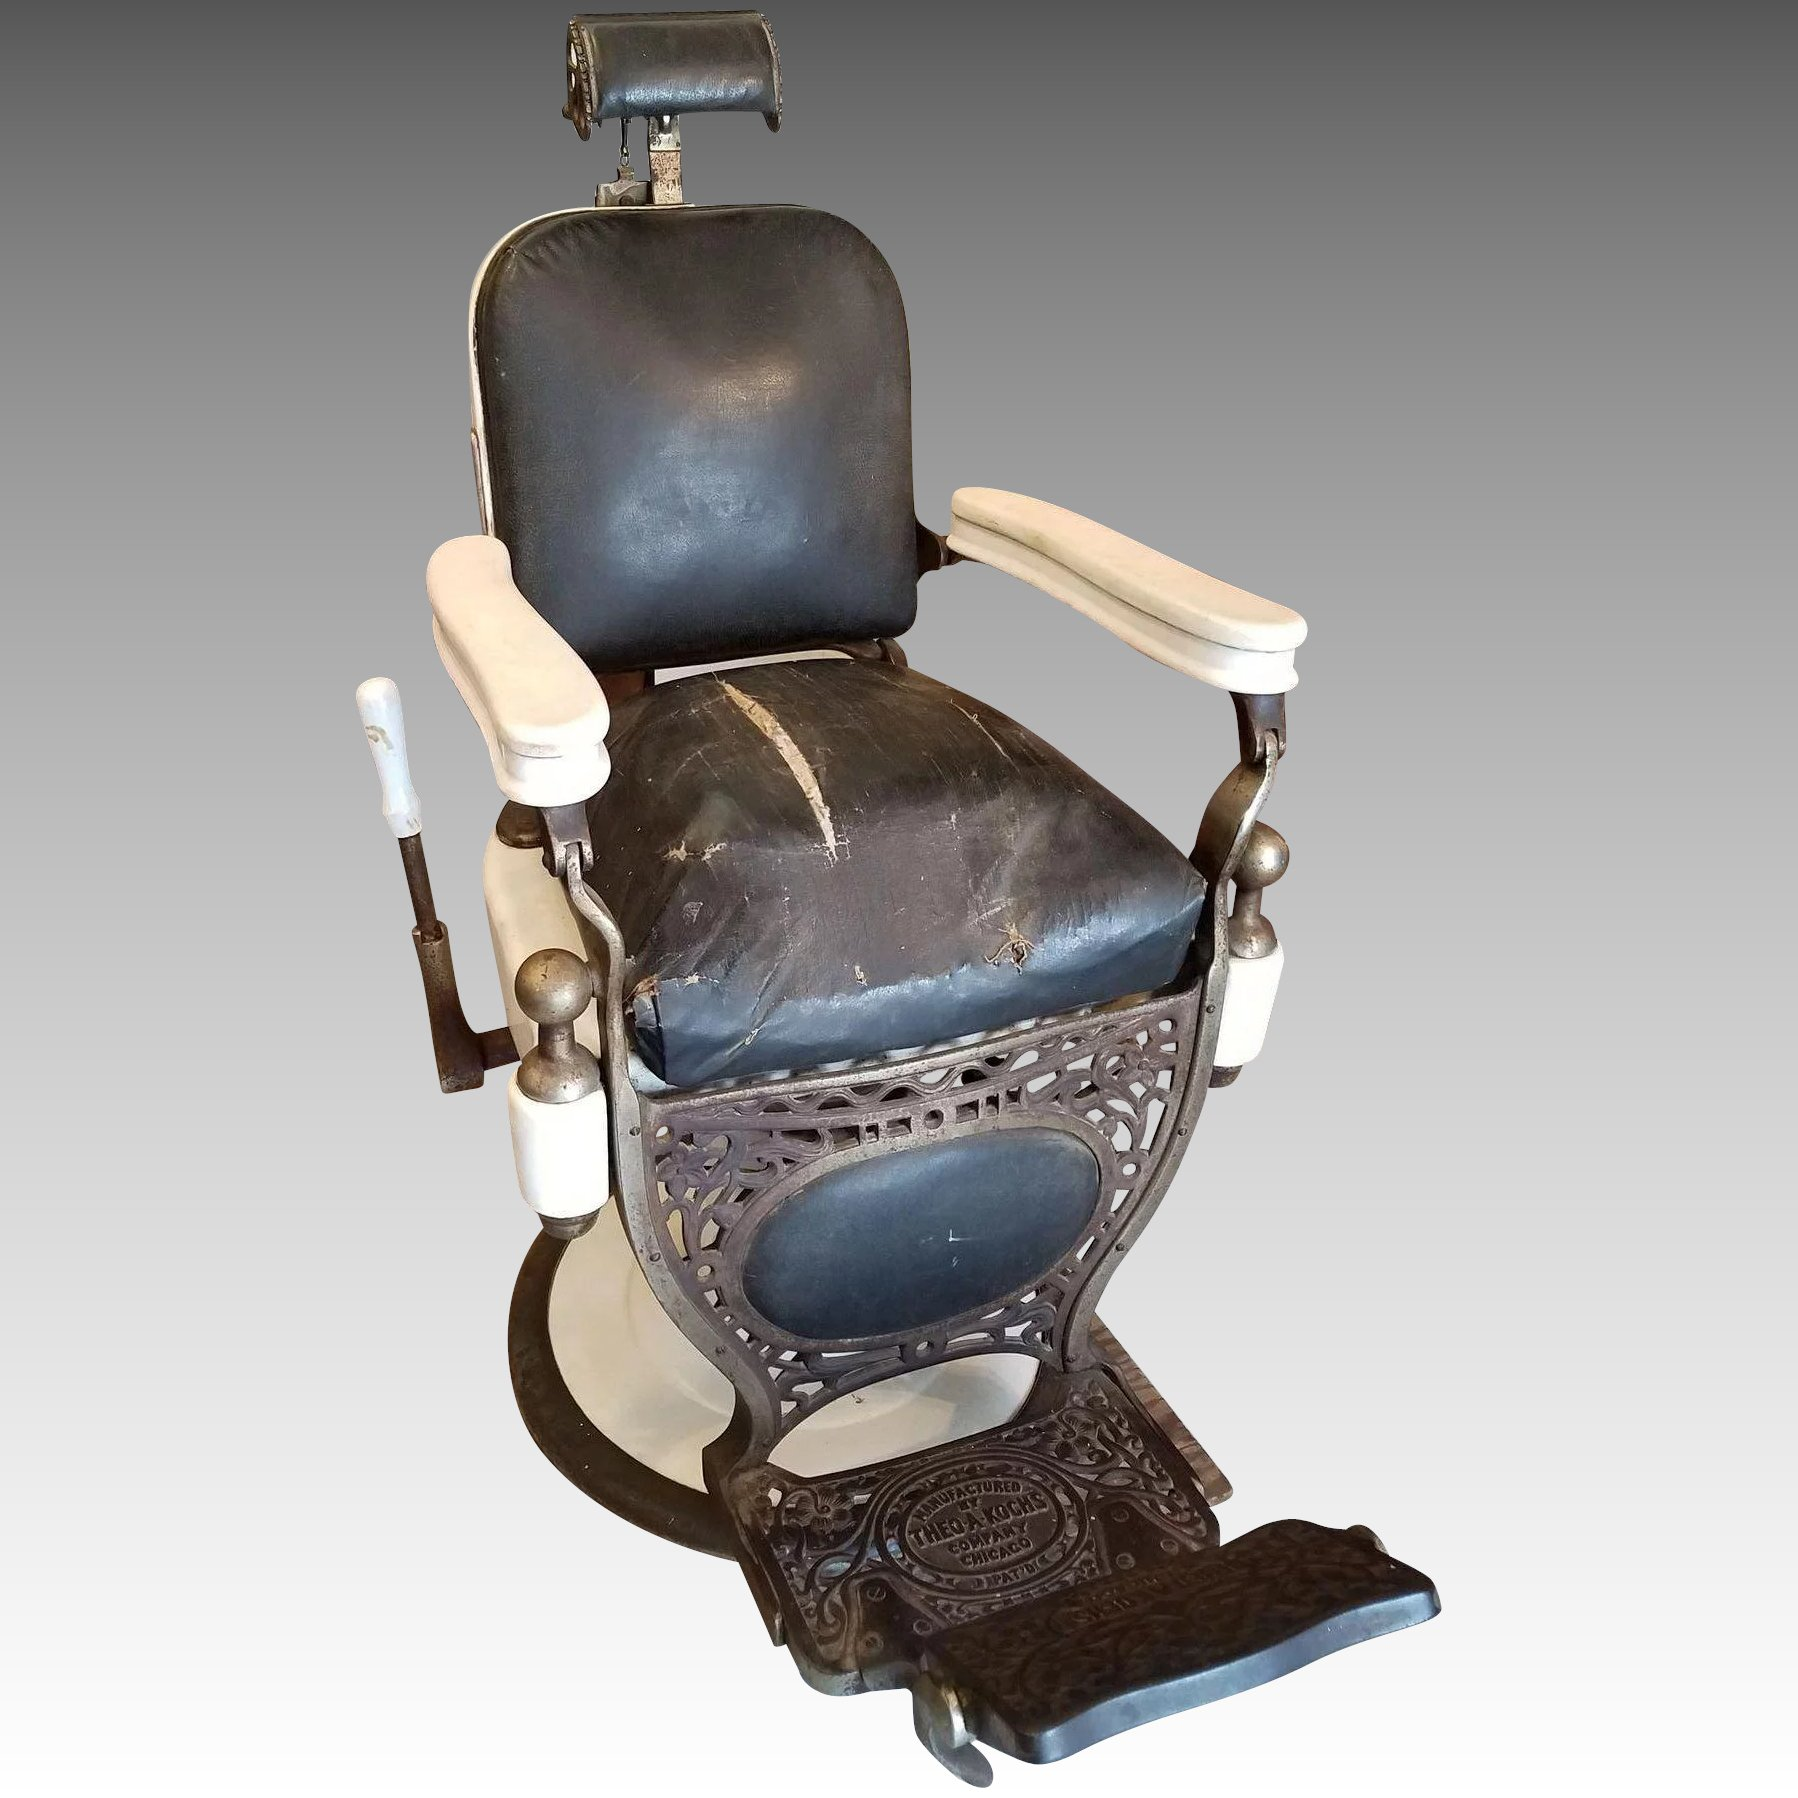 Theo A Kochs Barber Chair With Childs Seat. Click To Expand